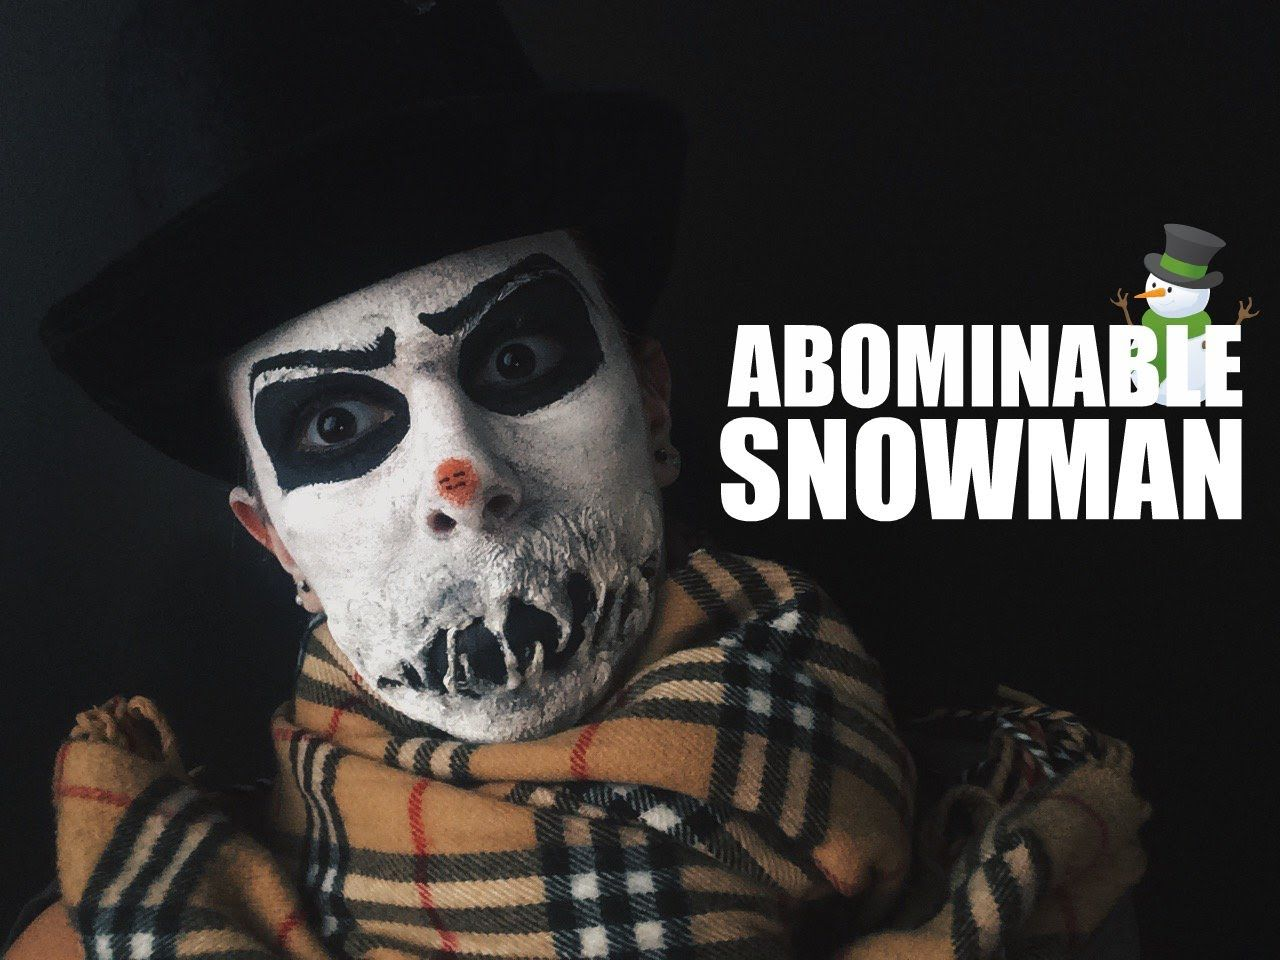 Abominable Snowman + Caged Mouth SFX Character design